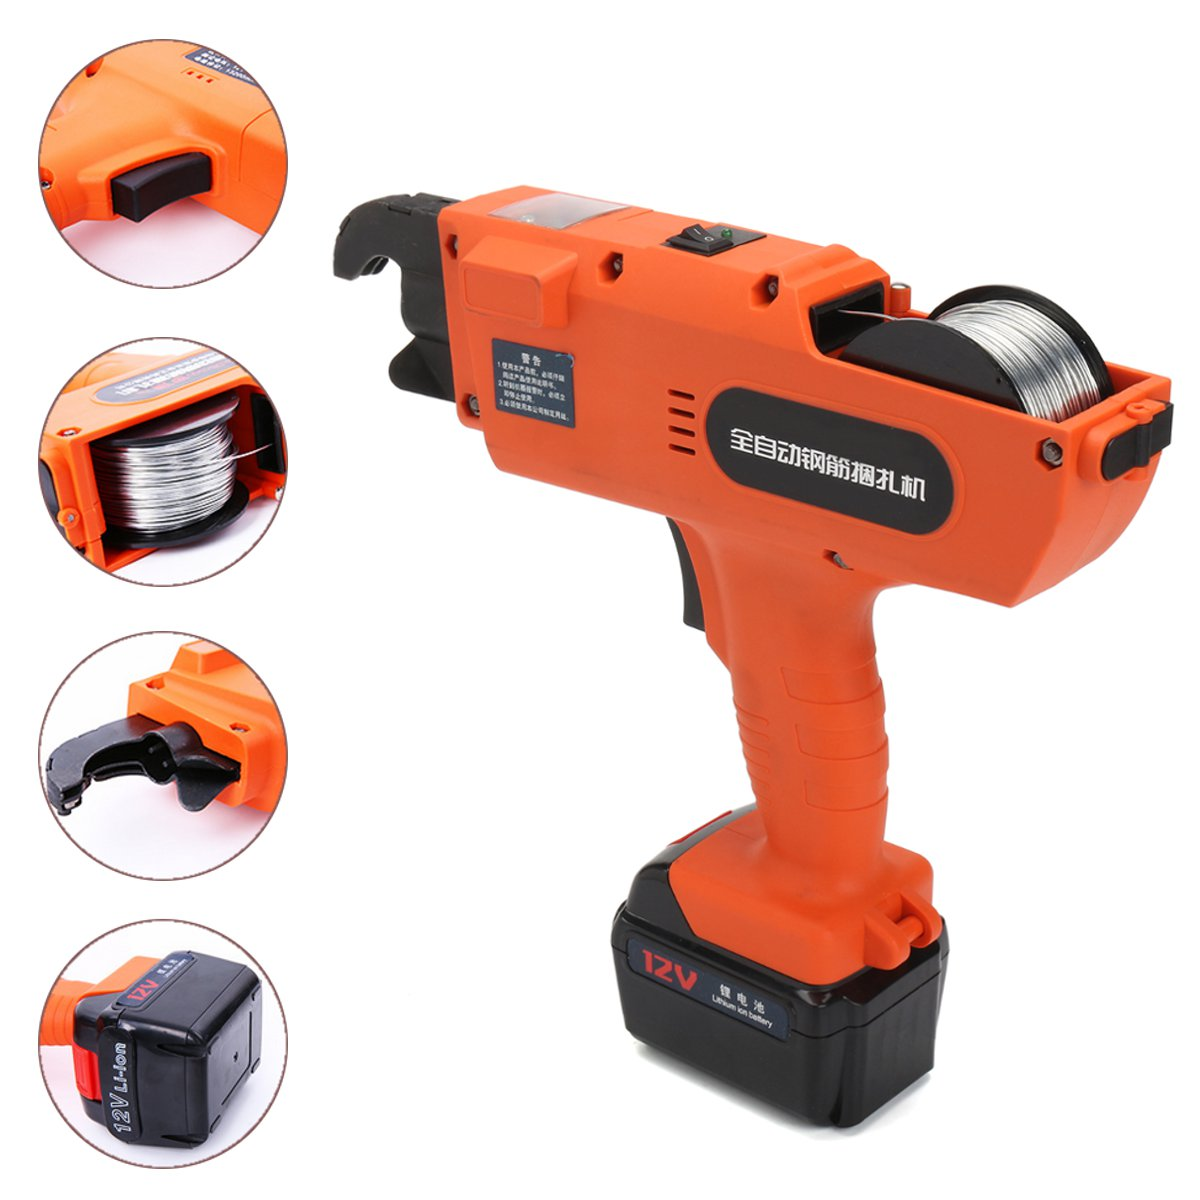 12V Automatic Handheld Rebar Tier Tool Building Tying Machine Strapping Tying Power Tools 30-60mm